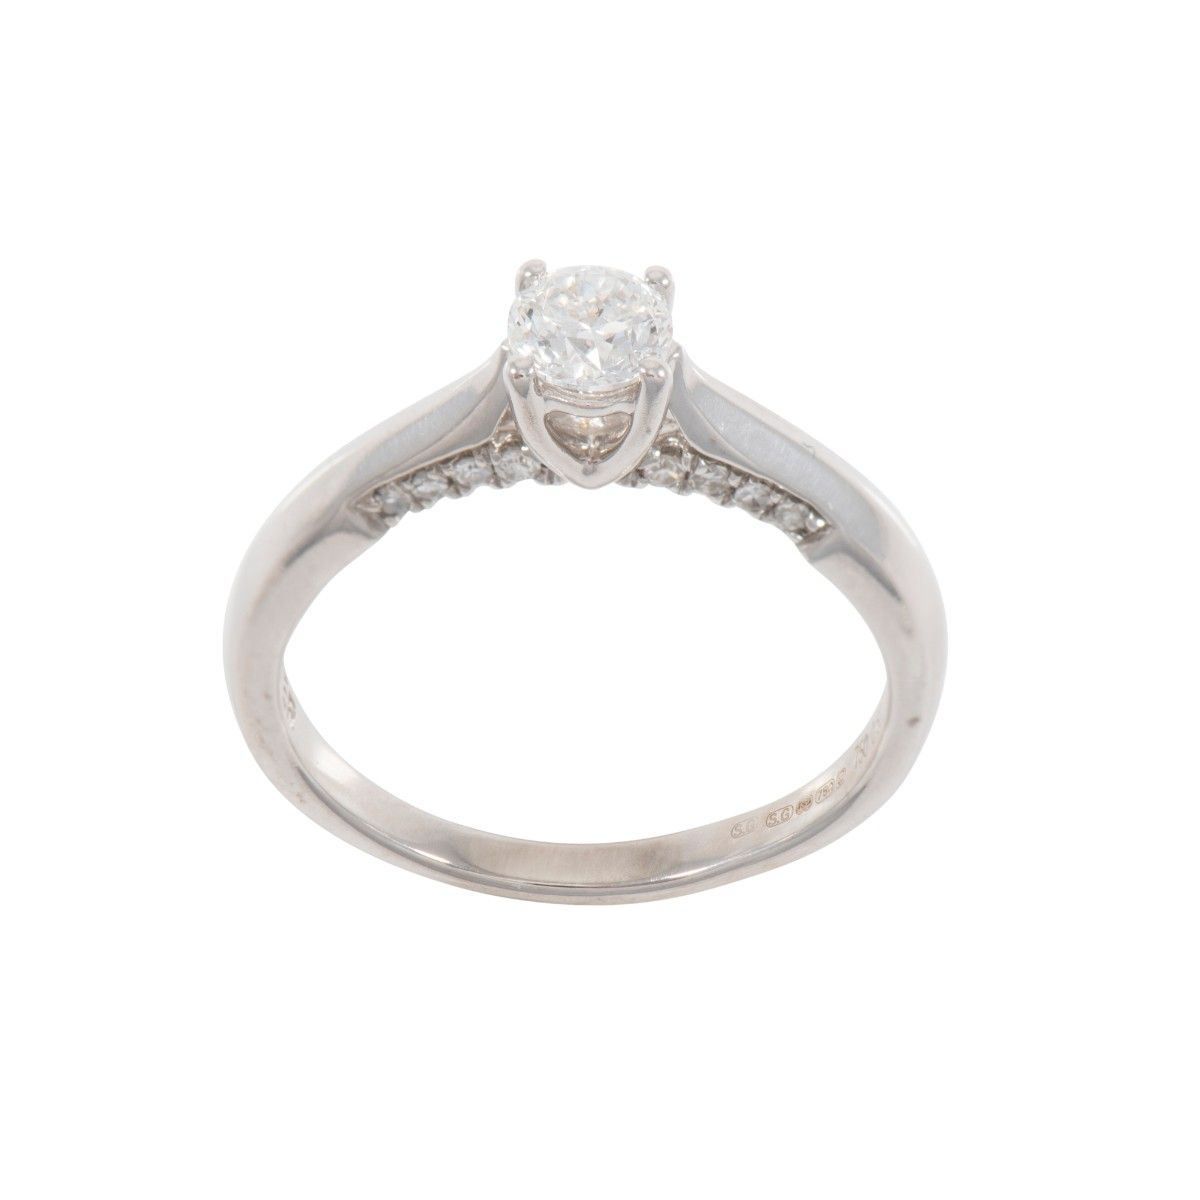 18ct White Gold Ladies 0.58ct Solitaire Ring With Accent Stones Size N